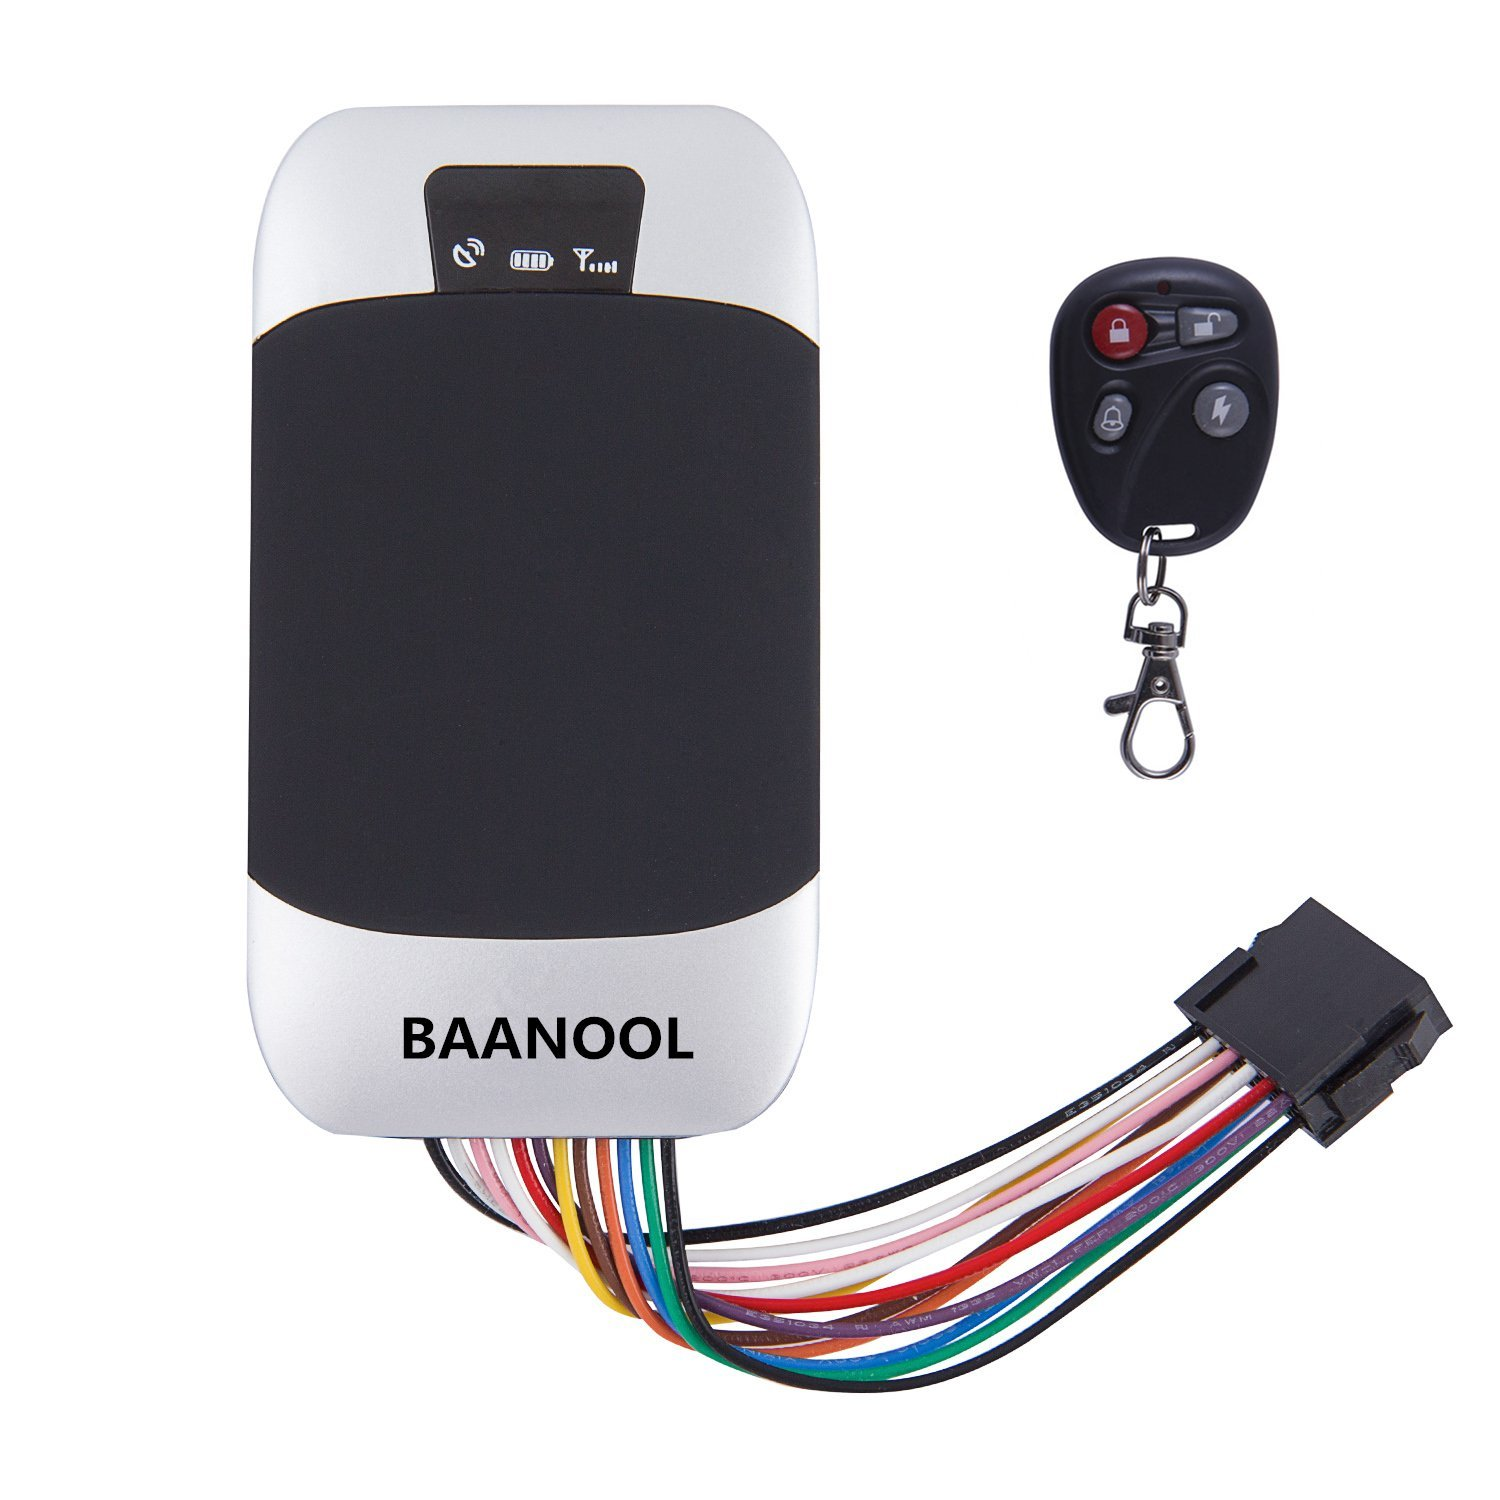 Car GPS Tracker BAANOOL Real Time GPS Tracking Device Car Tracker Device Remote Control Waterproof GPS Tracker Anti-Theft Car Tracking Alarm System 303G